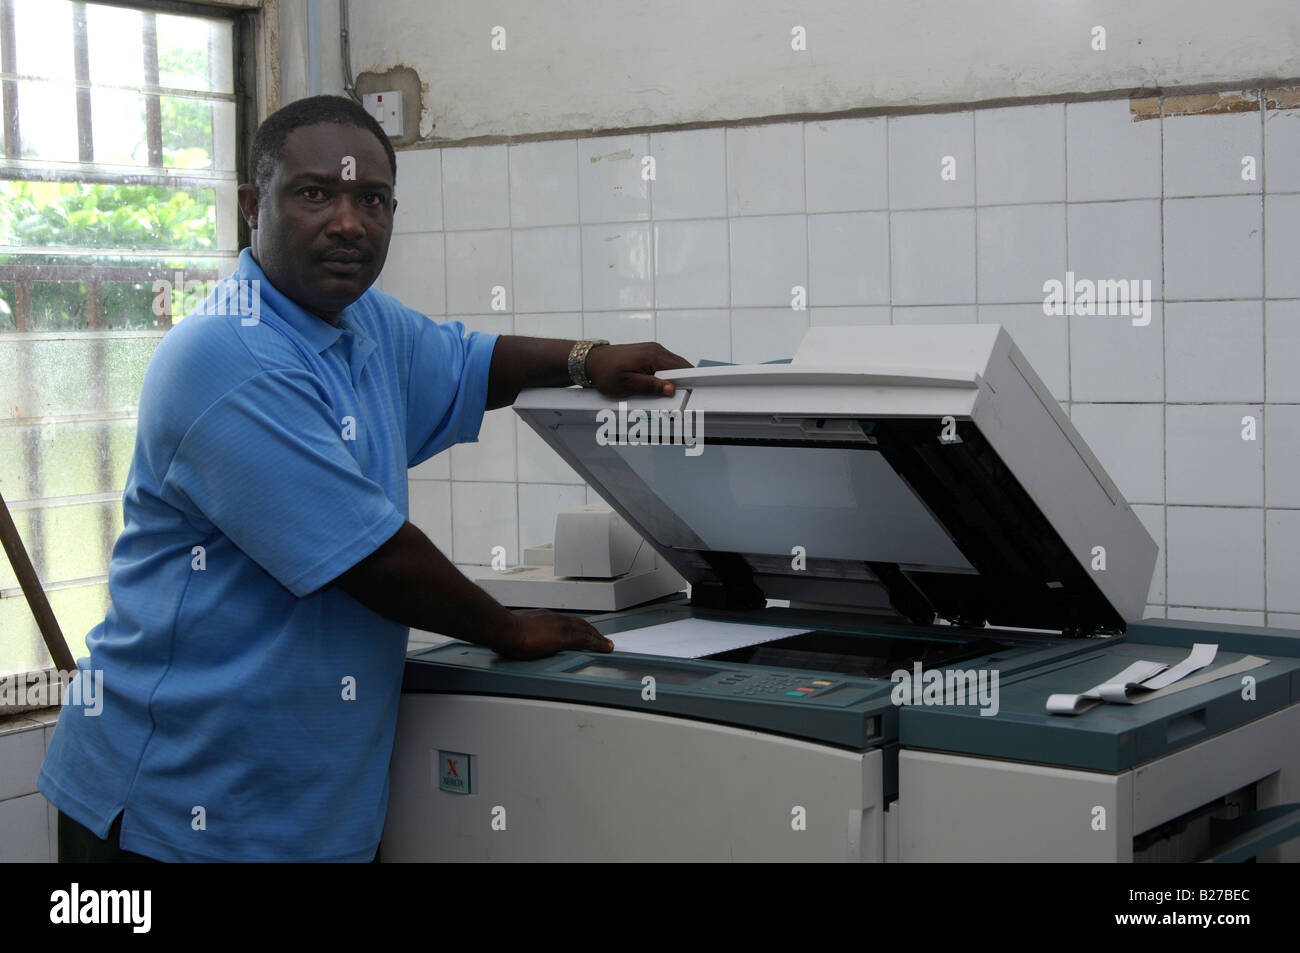 African man at a photocopier machine, Accra, Ghana - Stock Image